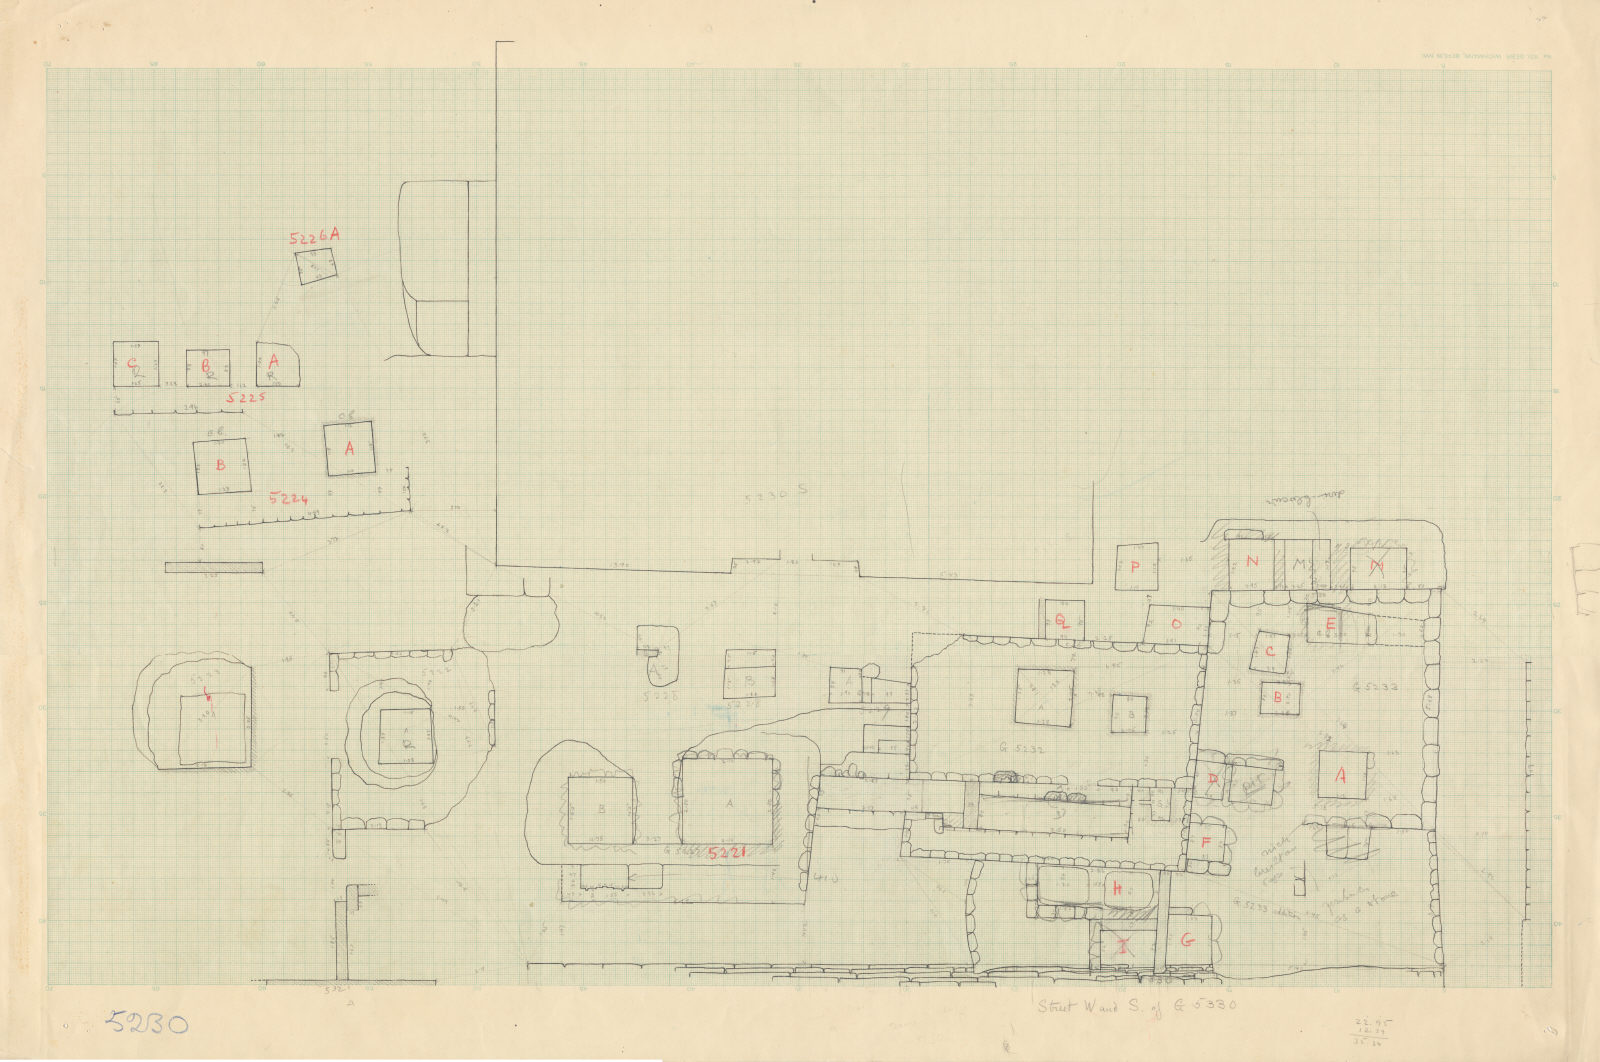 Maps and plans: Plan of Cemetery G 5000, with positions of G 5221, G 5222, G 5223, G 5224, G 5225, G 5226, G 5228, G 5229, G 5232, G 5233